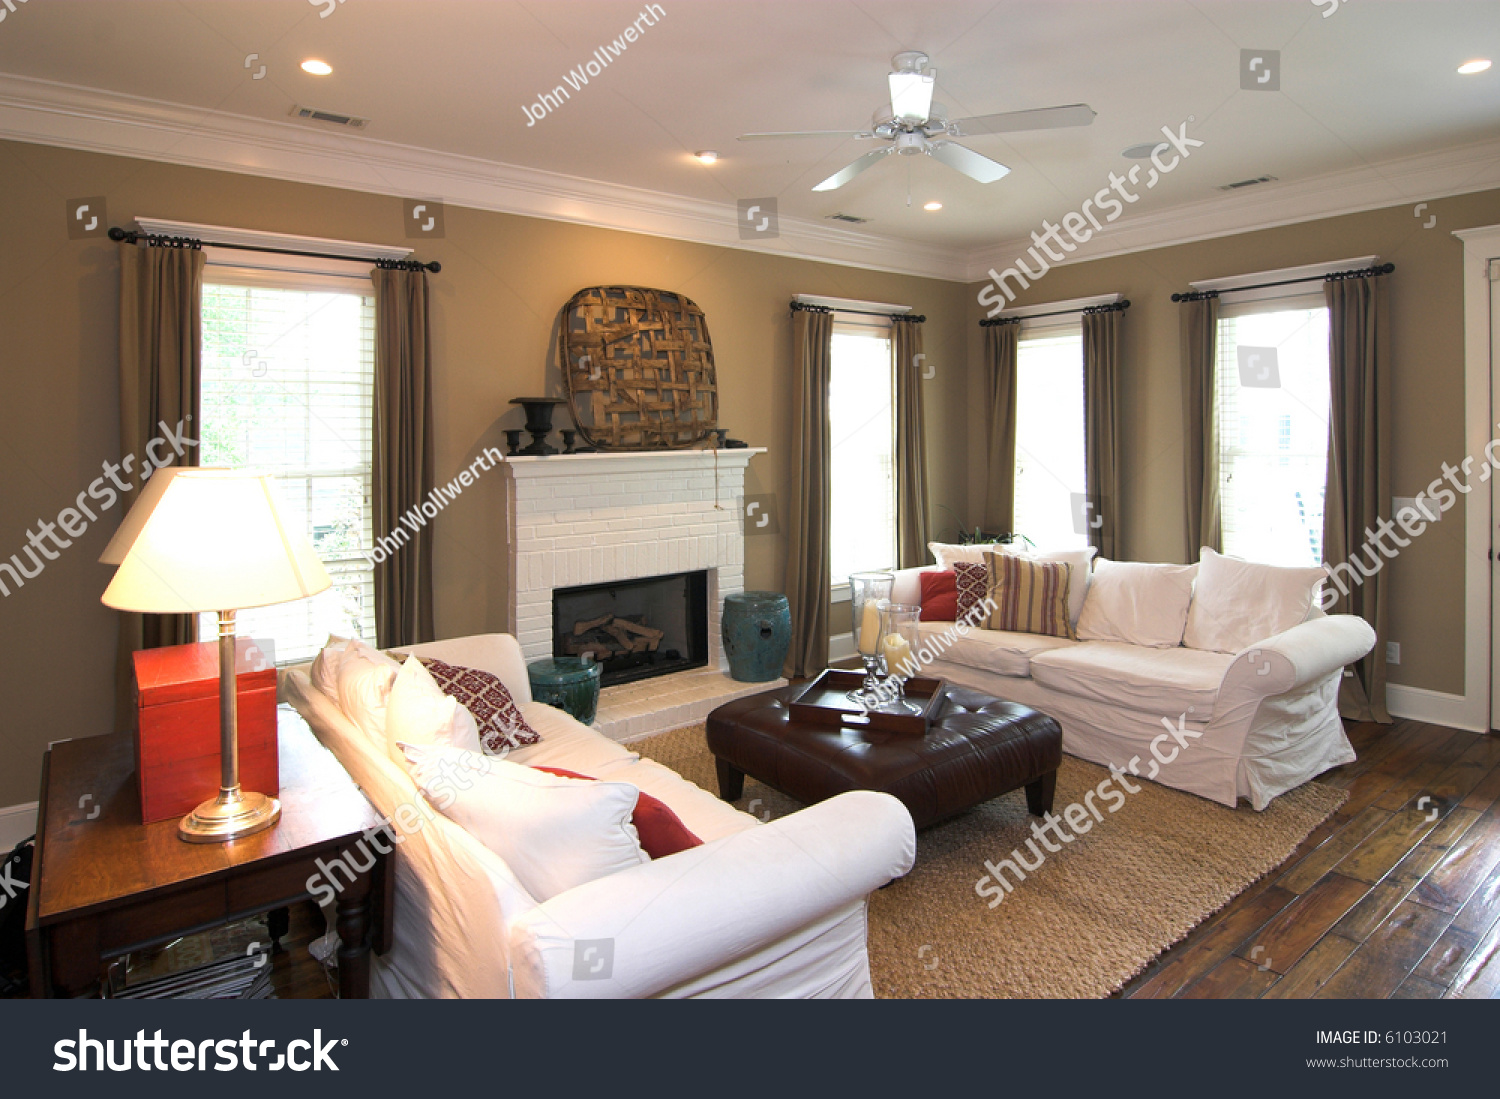 Comfortable, Well Decorated Livingroom Stock Photo 6103021